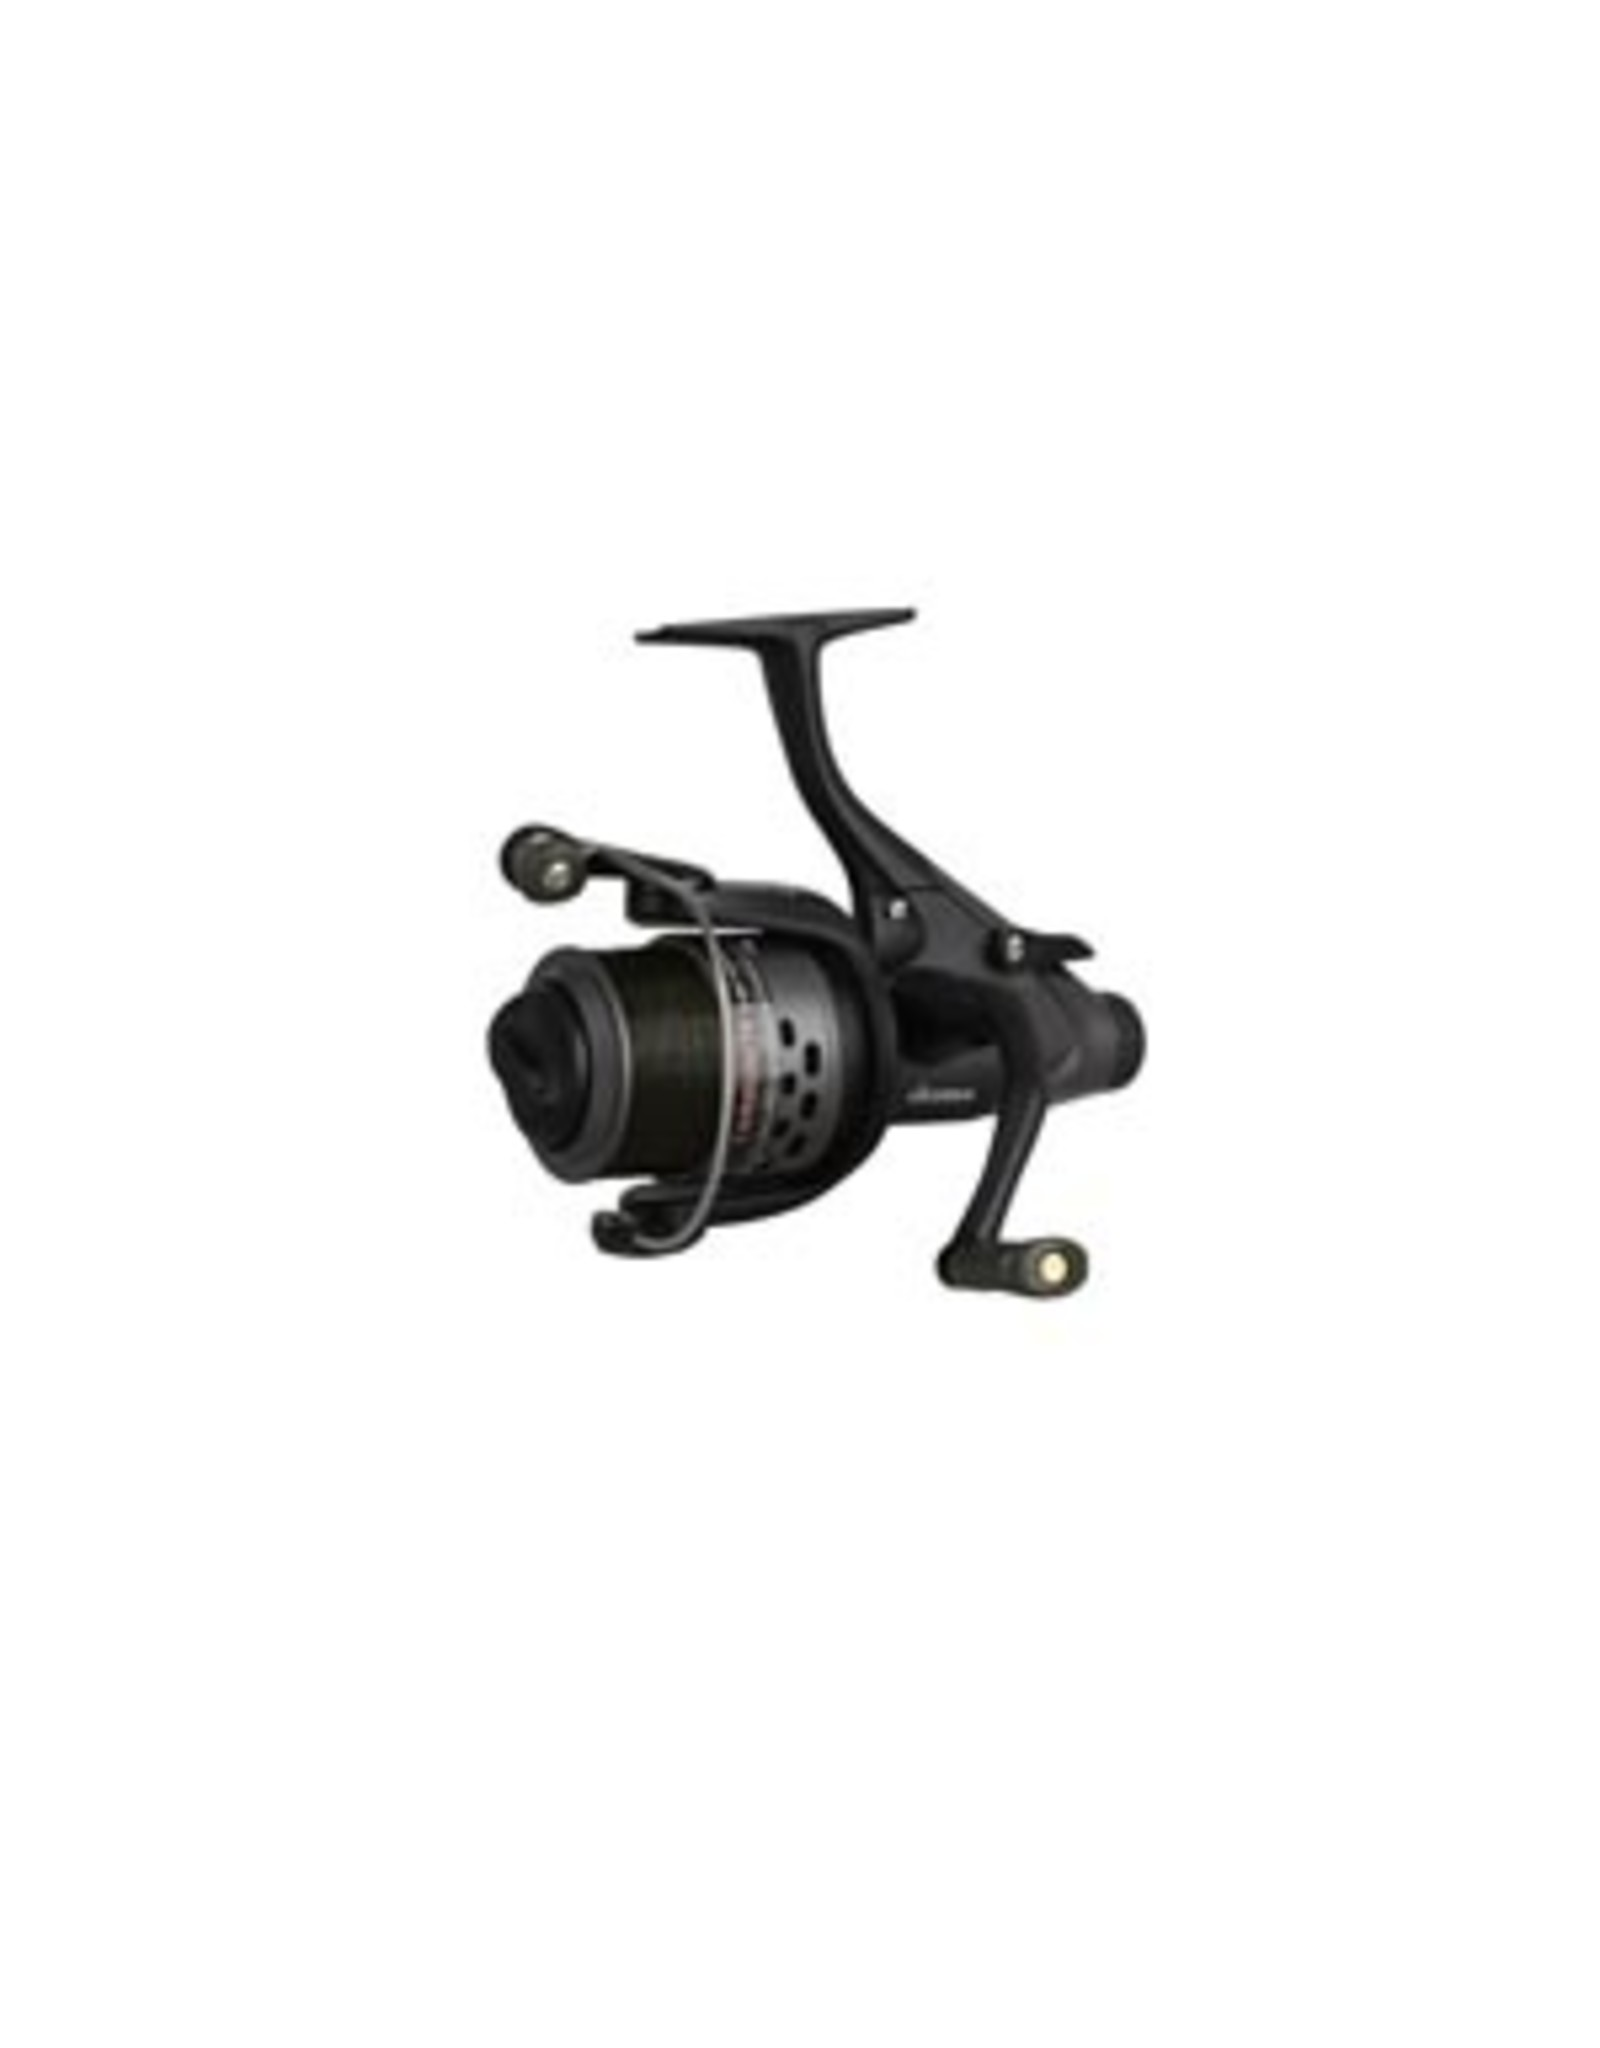 Okuma Okuma Carbonite XP Baitfeeder